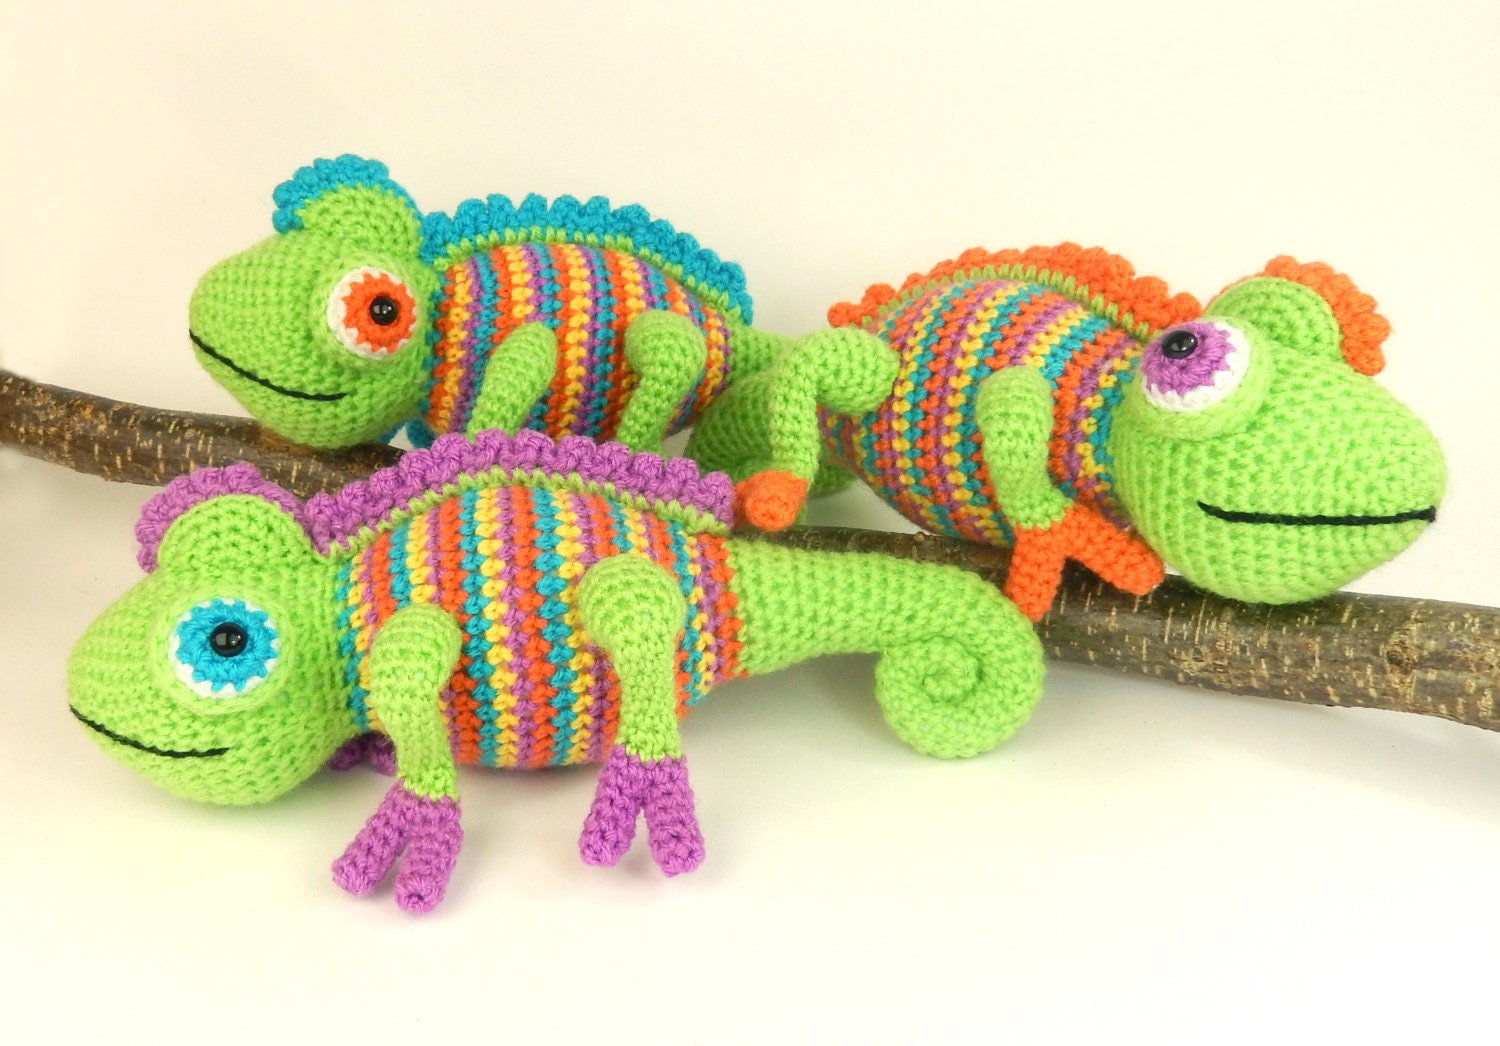 Camelia the Chameleon - Amigurumi Crochet Pattern from ...